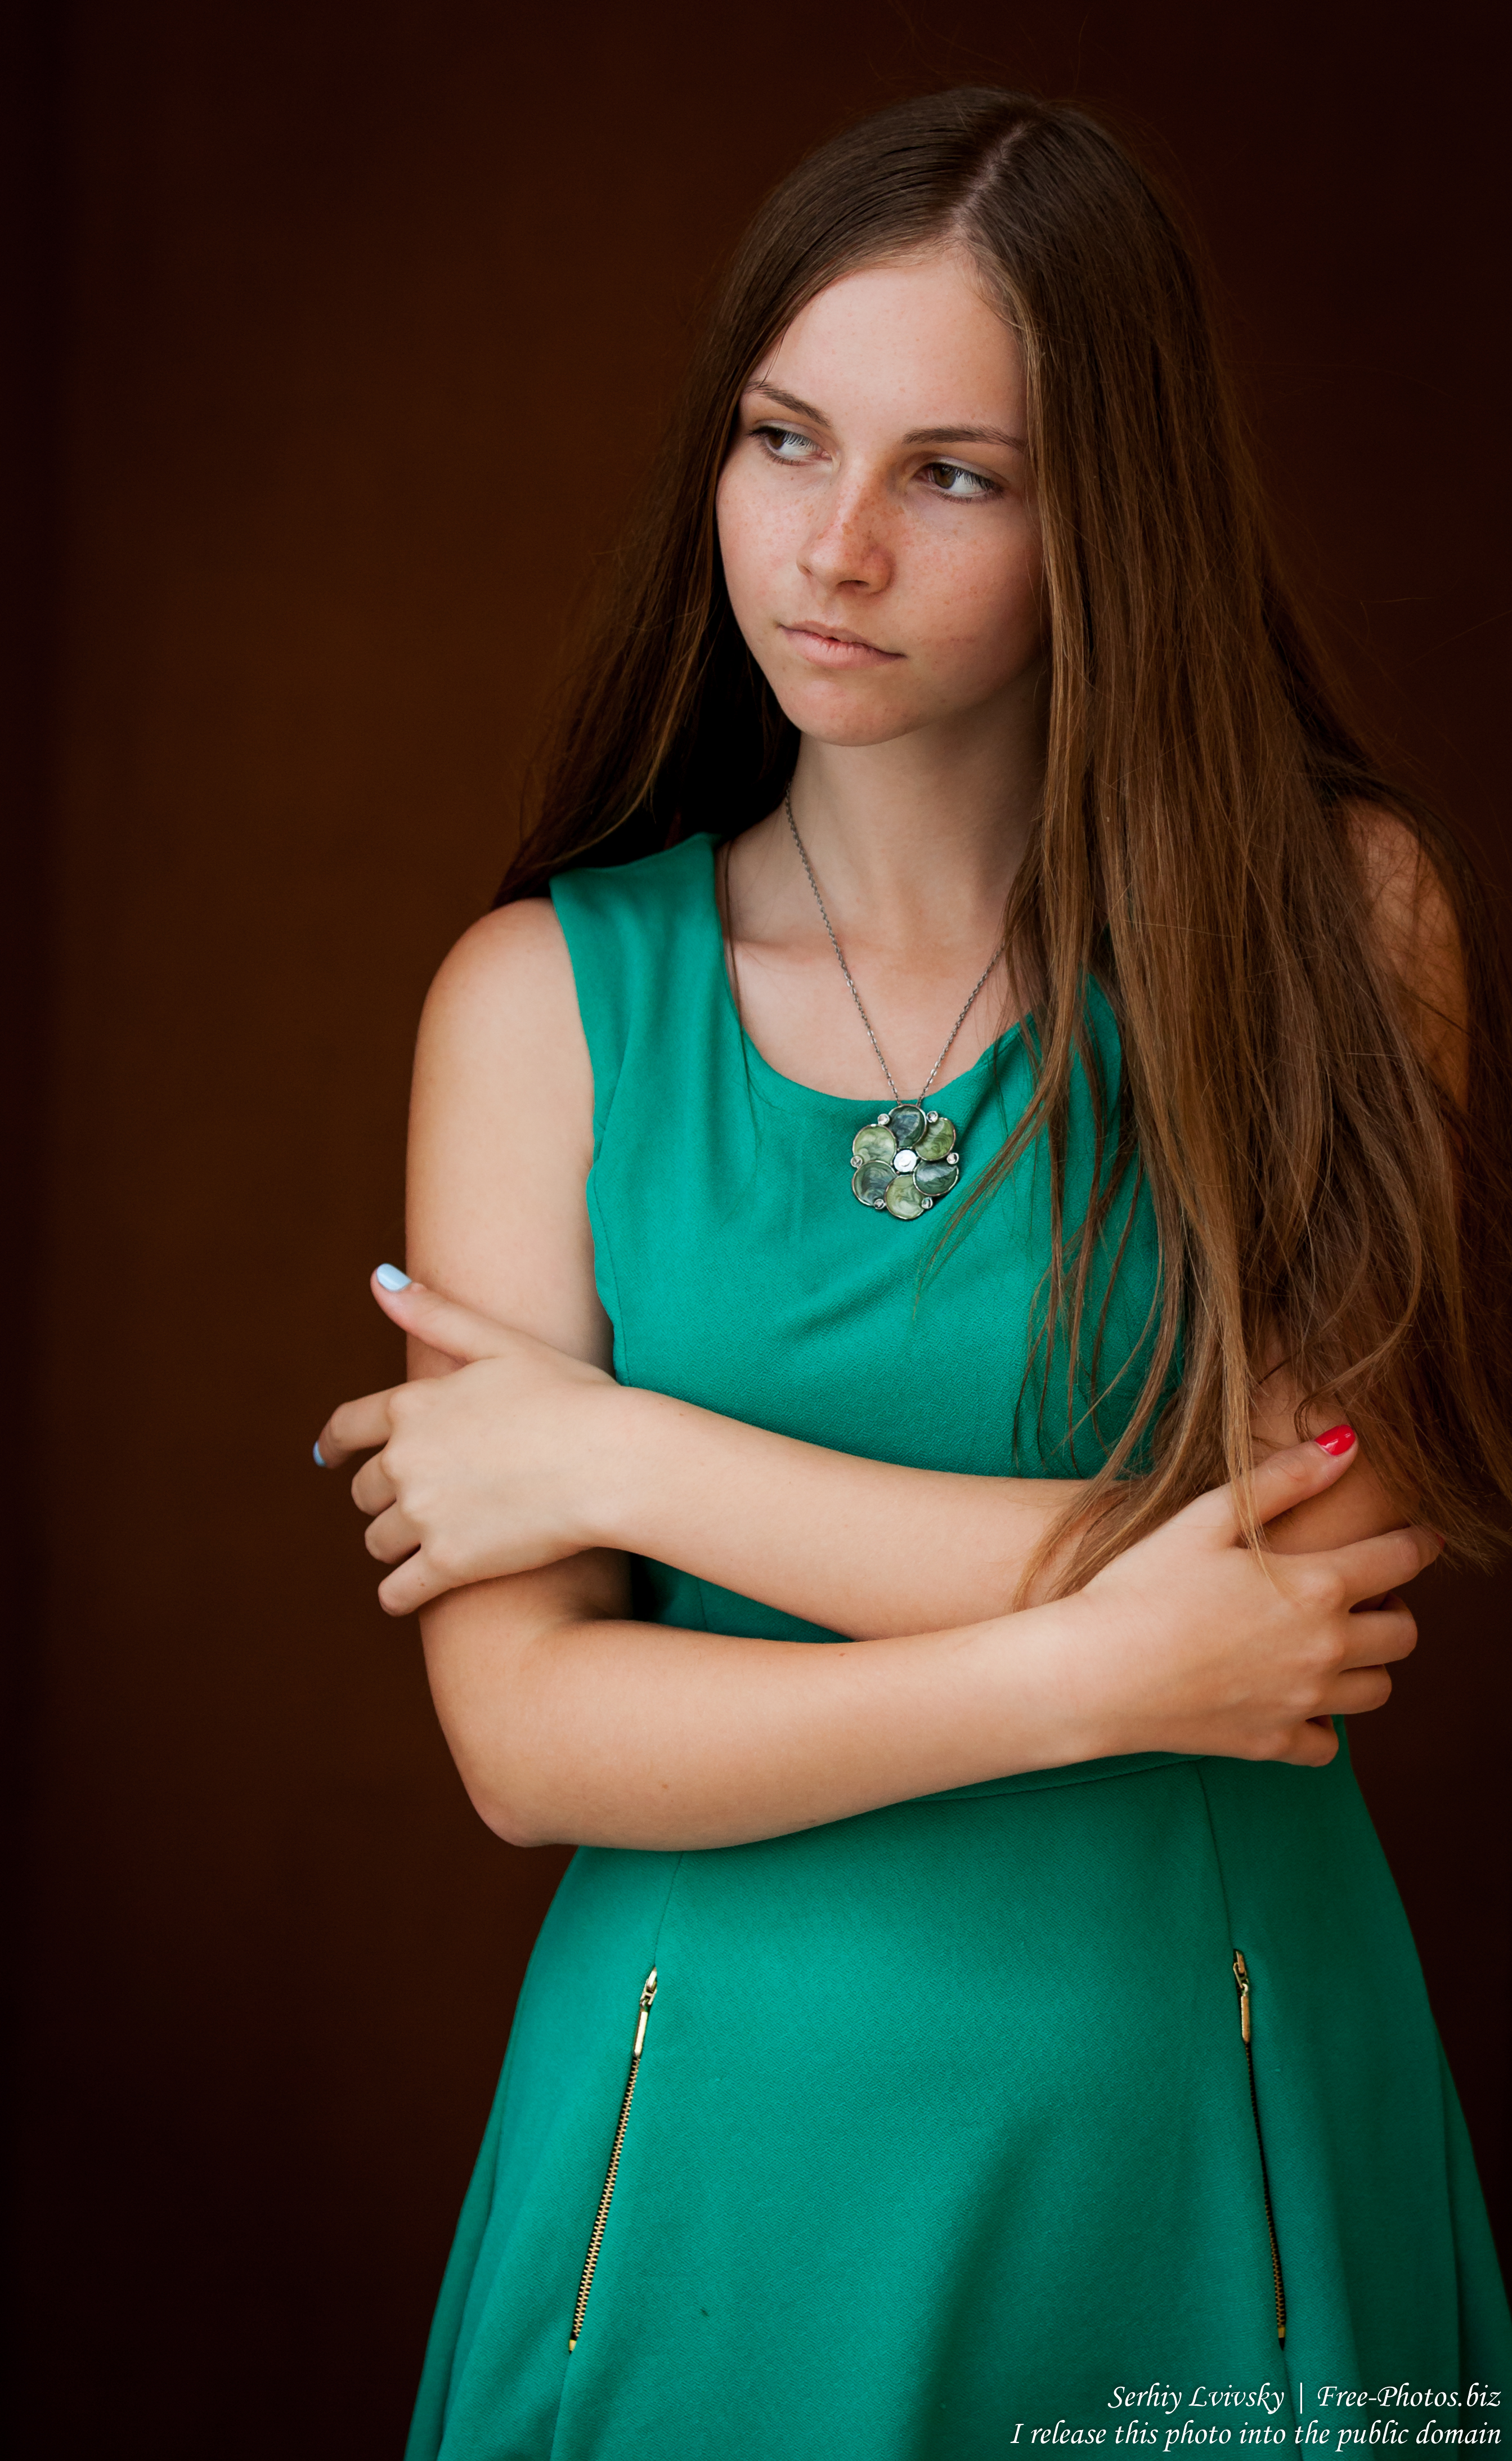 a 14-year-old Catholic girl photographed by Serhiy Lvivsky in August 2015, picture 9